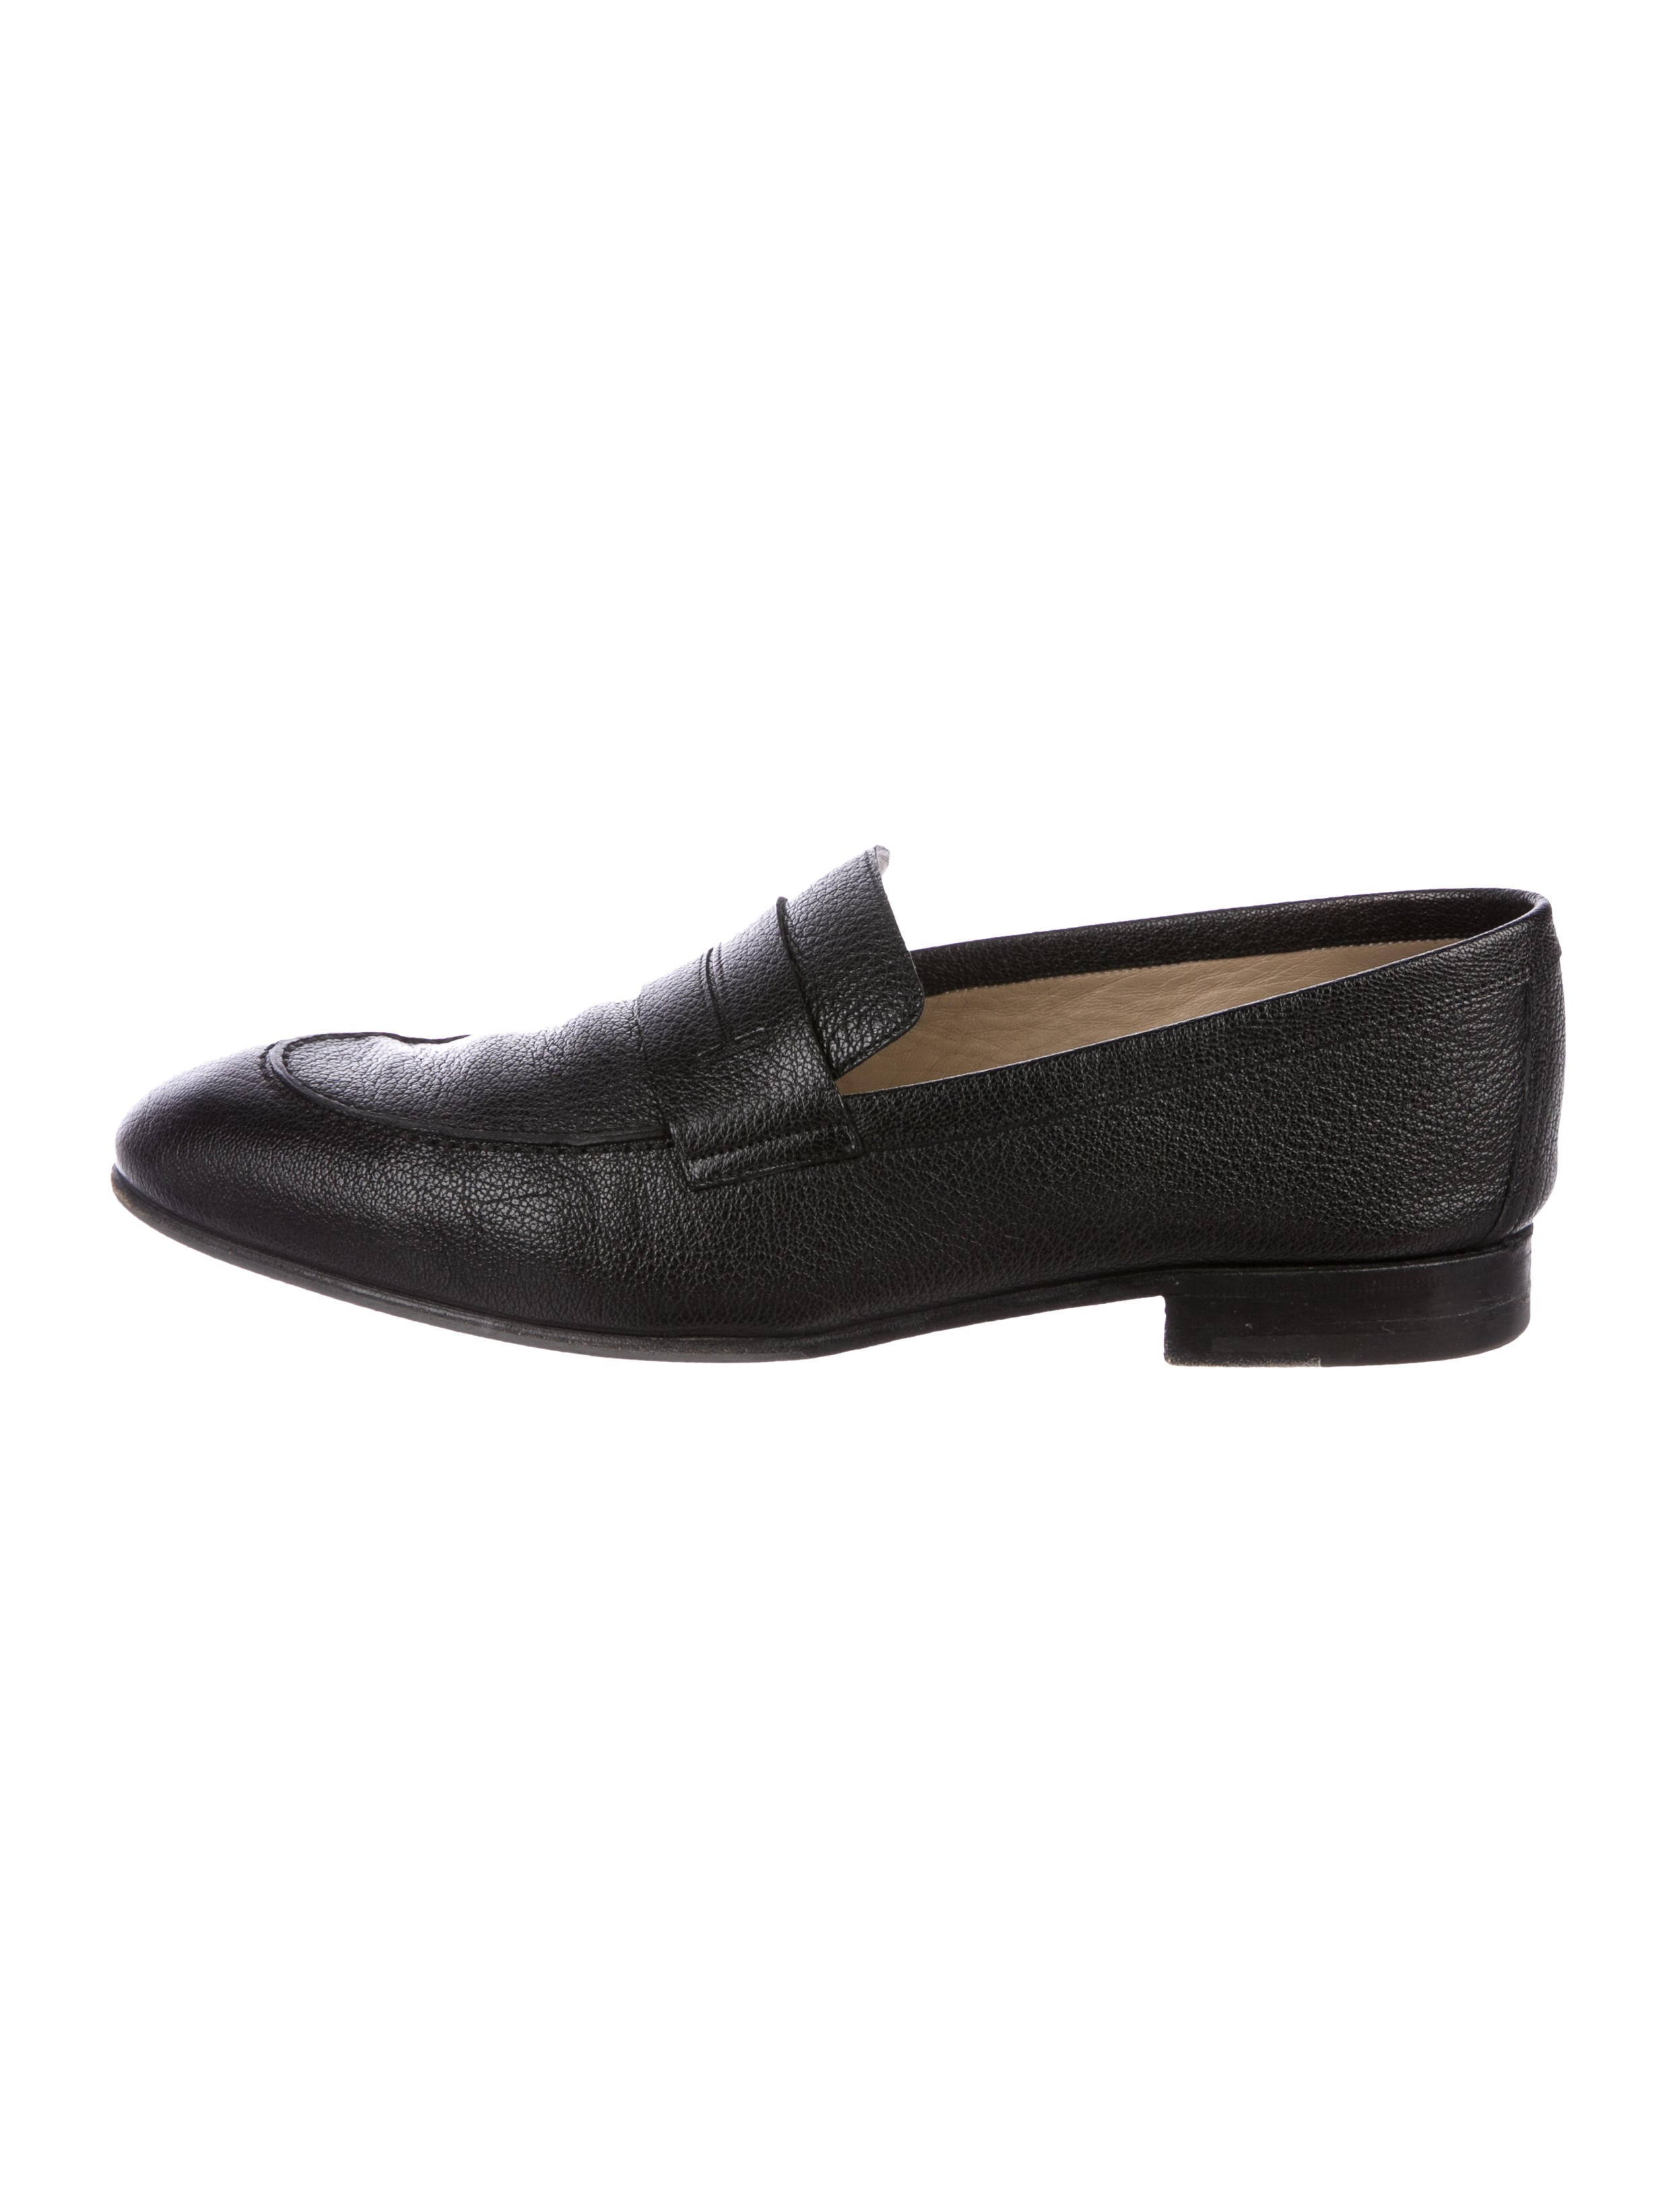 Hermès Leather Round-Toe Loafers sneakernews cheap sale reliable clearance Cheapest cbOTgT2